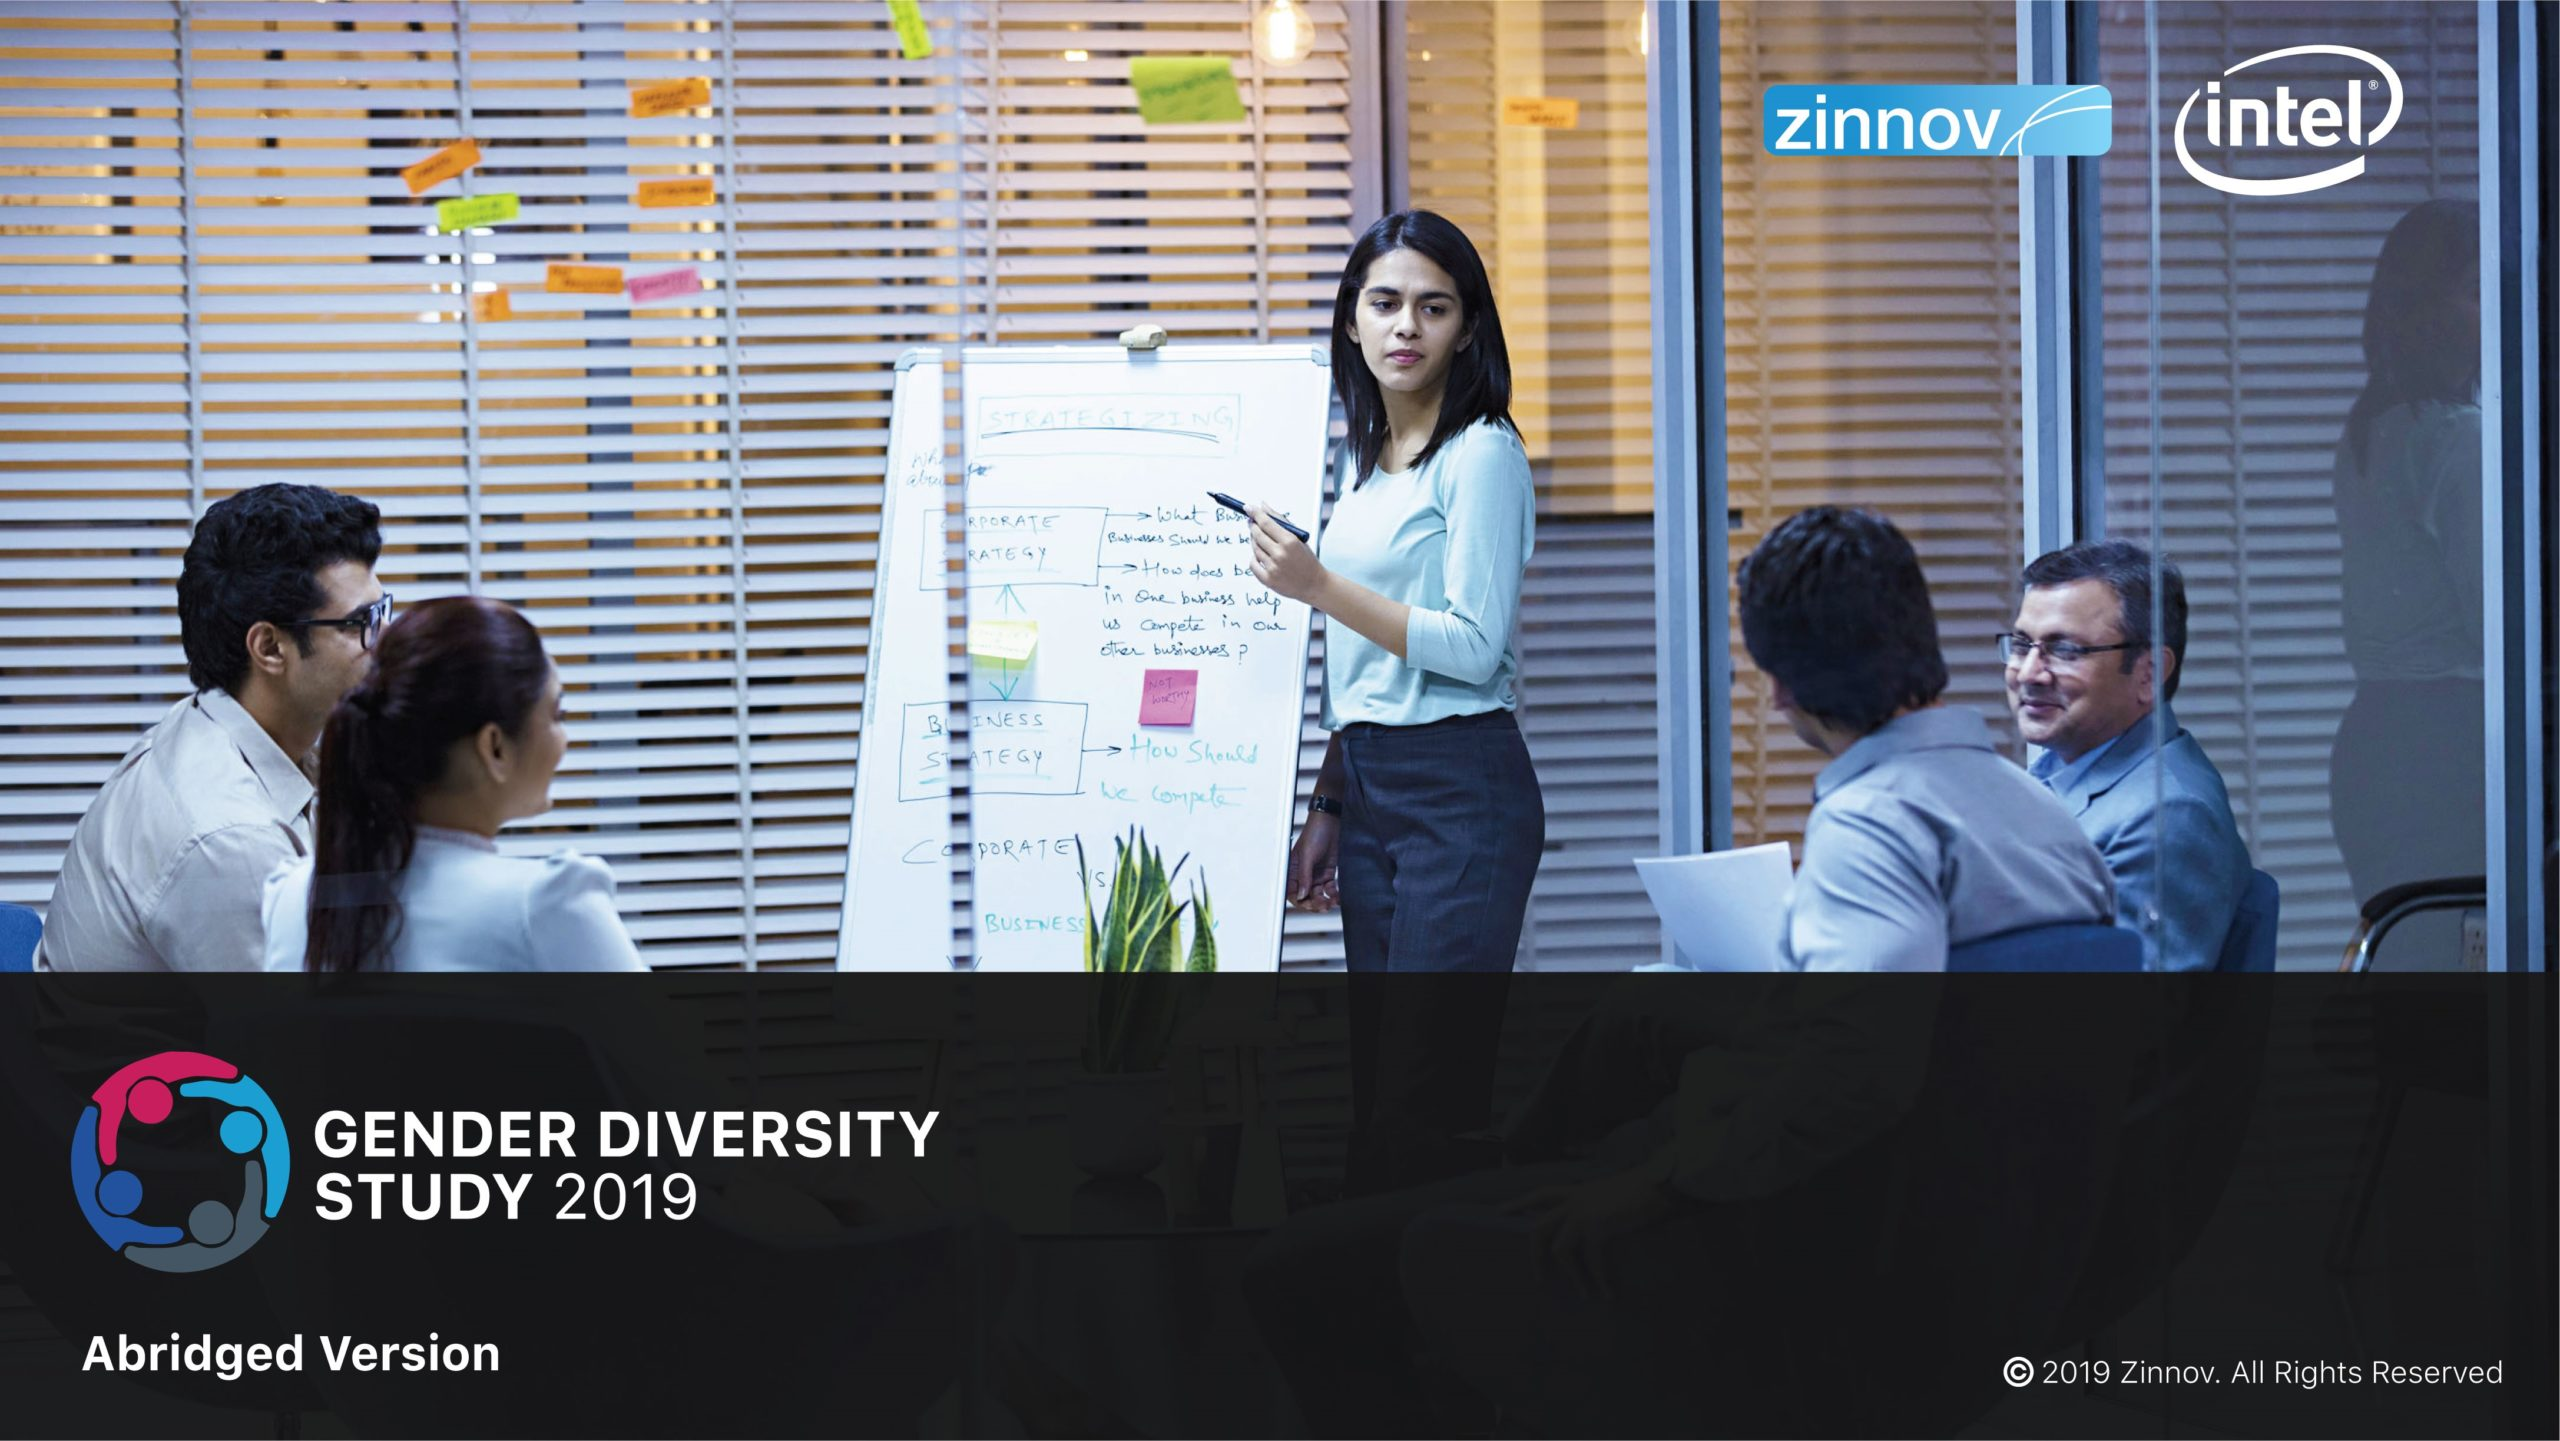 Zinnov-Intel Gender Diversity Benchmark